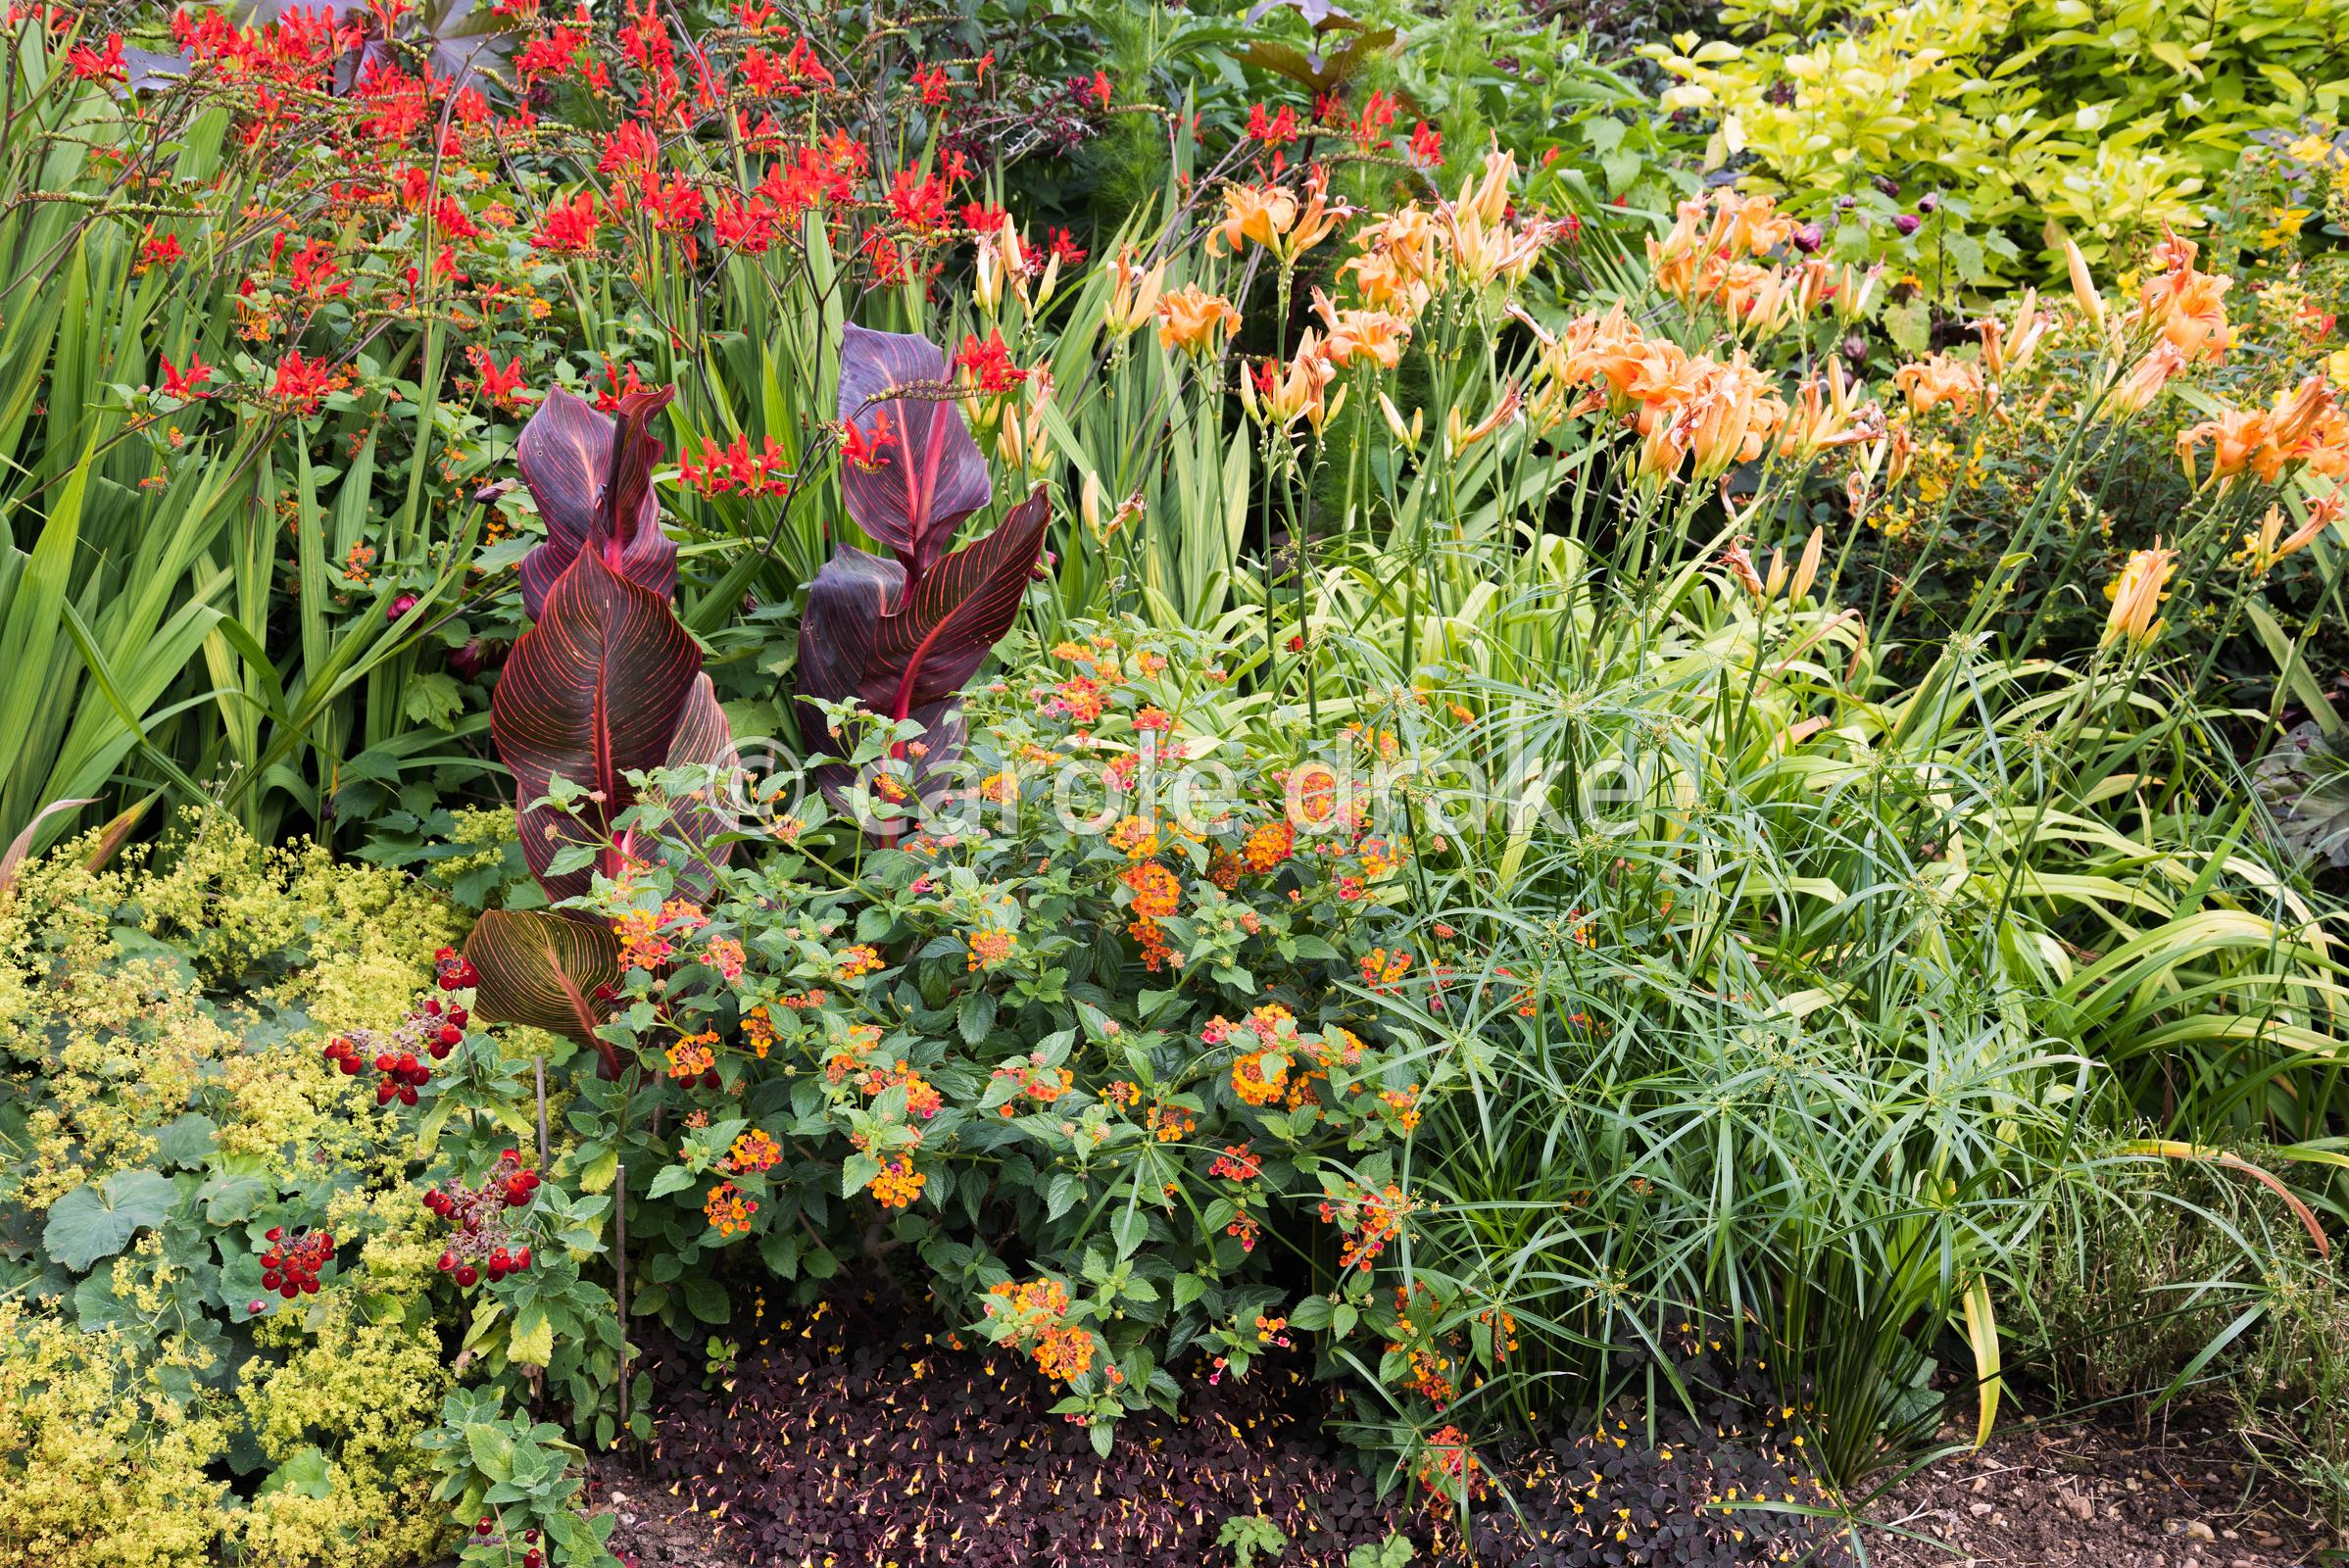 Late summer border at Bourton House, Moreton-in-Marsh in August with Cyperus alternifolius, Lantana camara, Canna 'Durban', A...